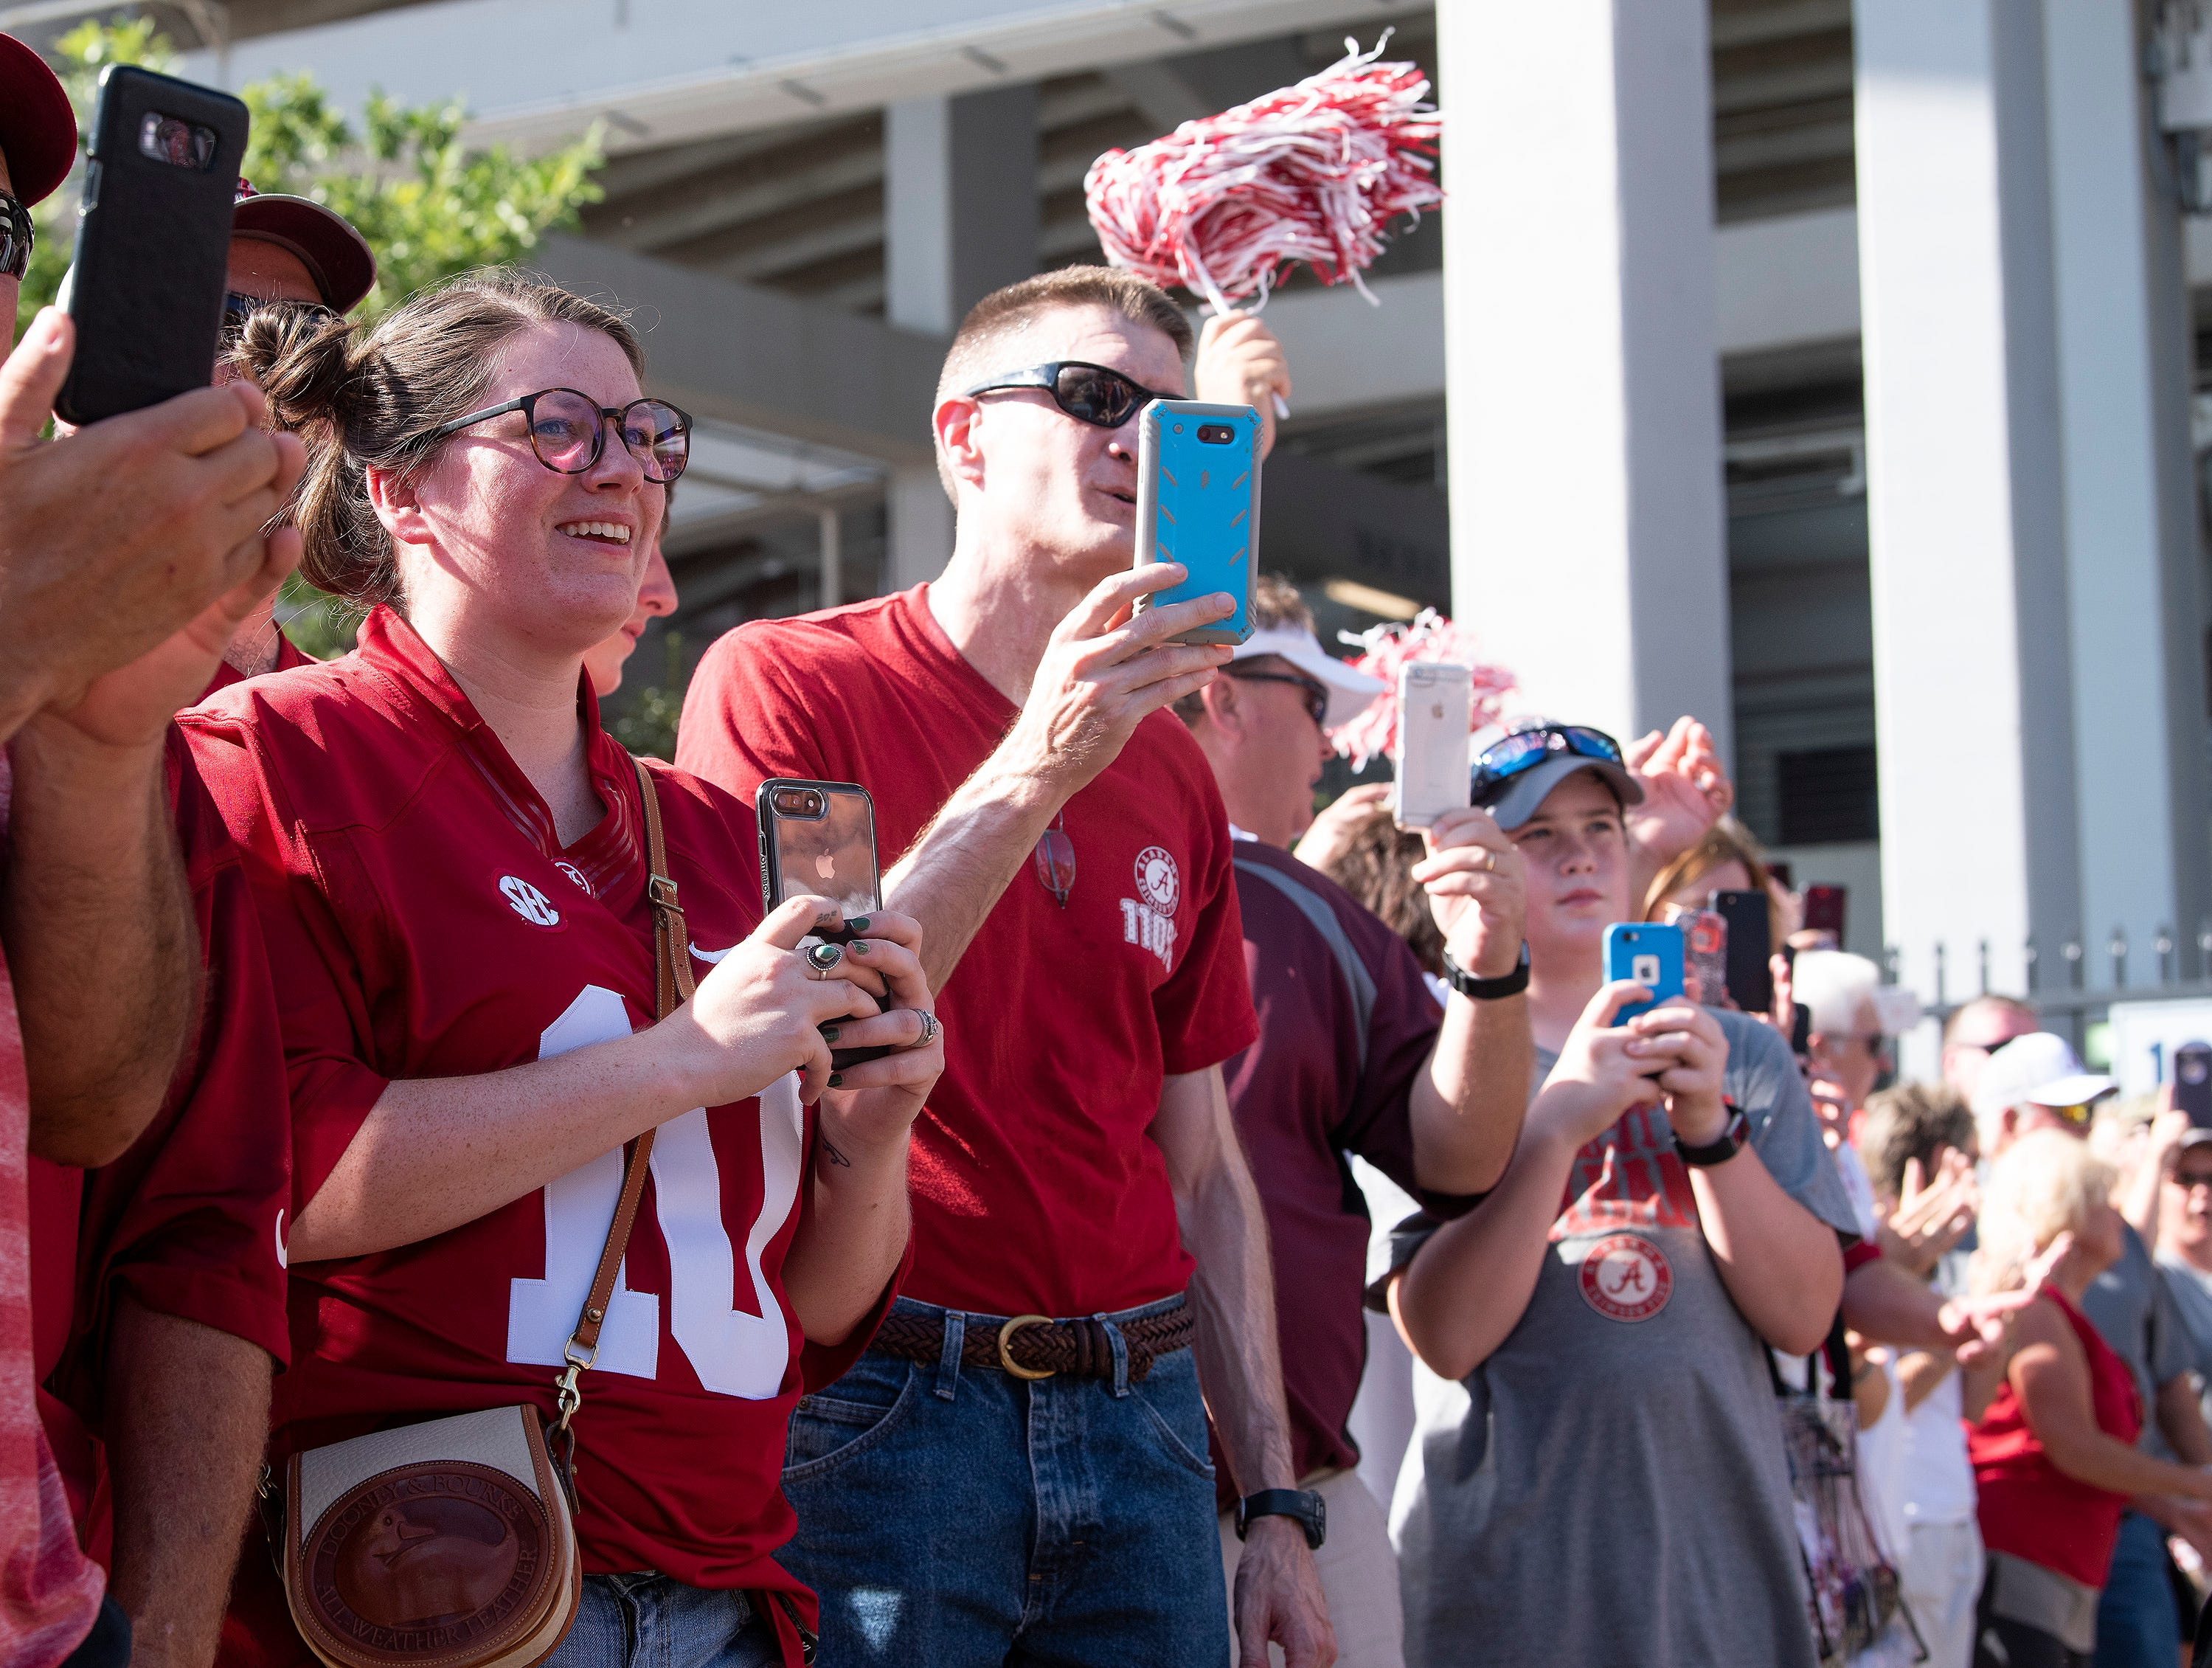 Alabama fans line the way as the Alabama football team arrives on the Ole Miss campus in Oxford, Ms., on Saturday September 15, 2018.